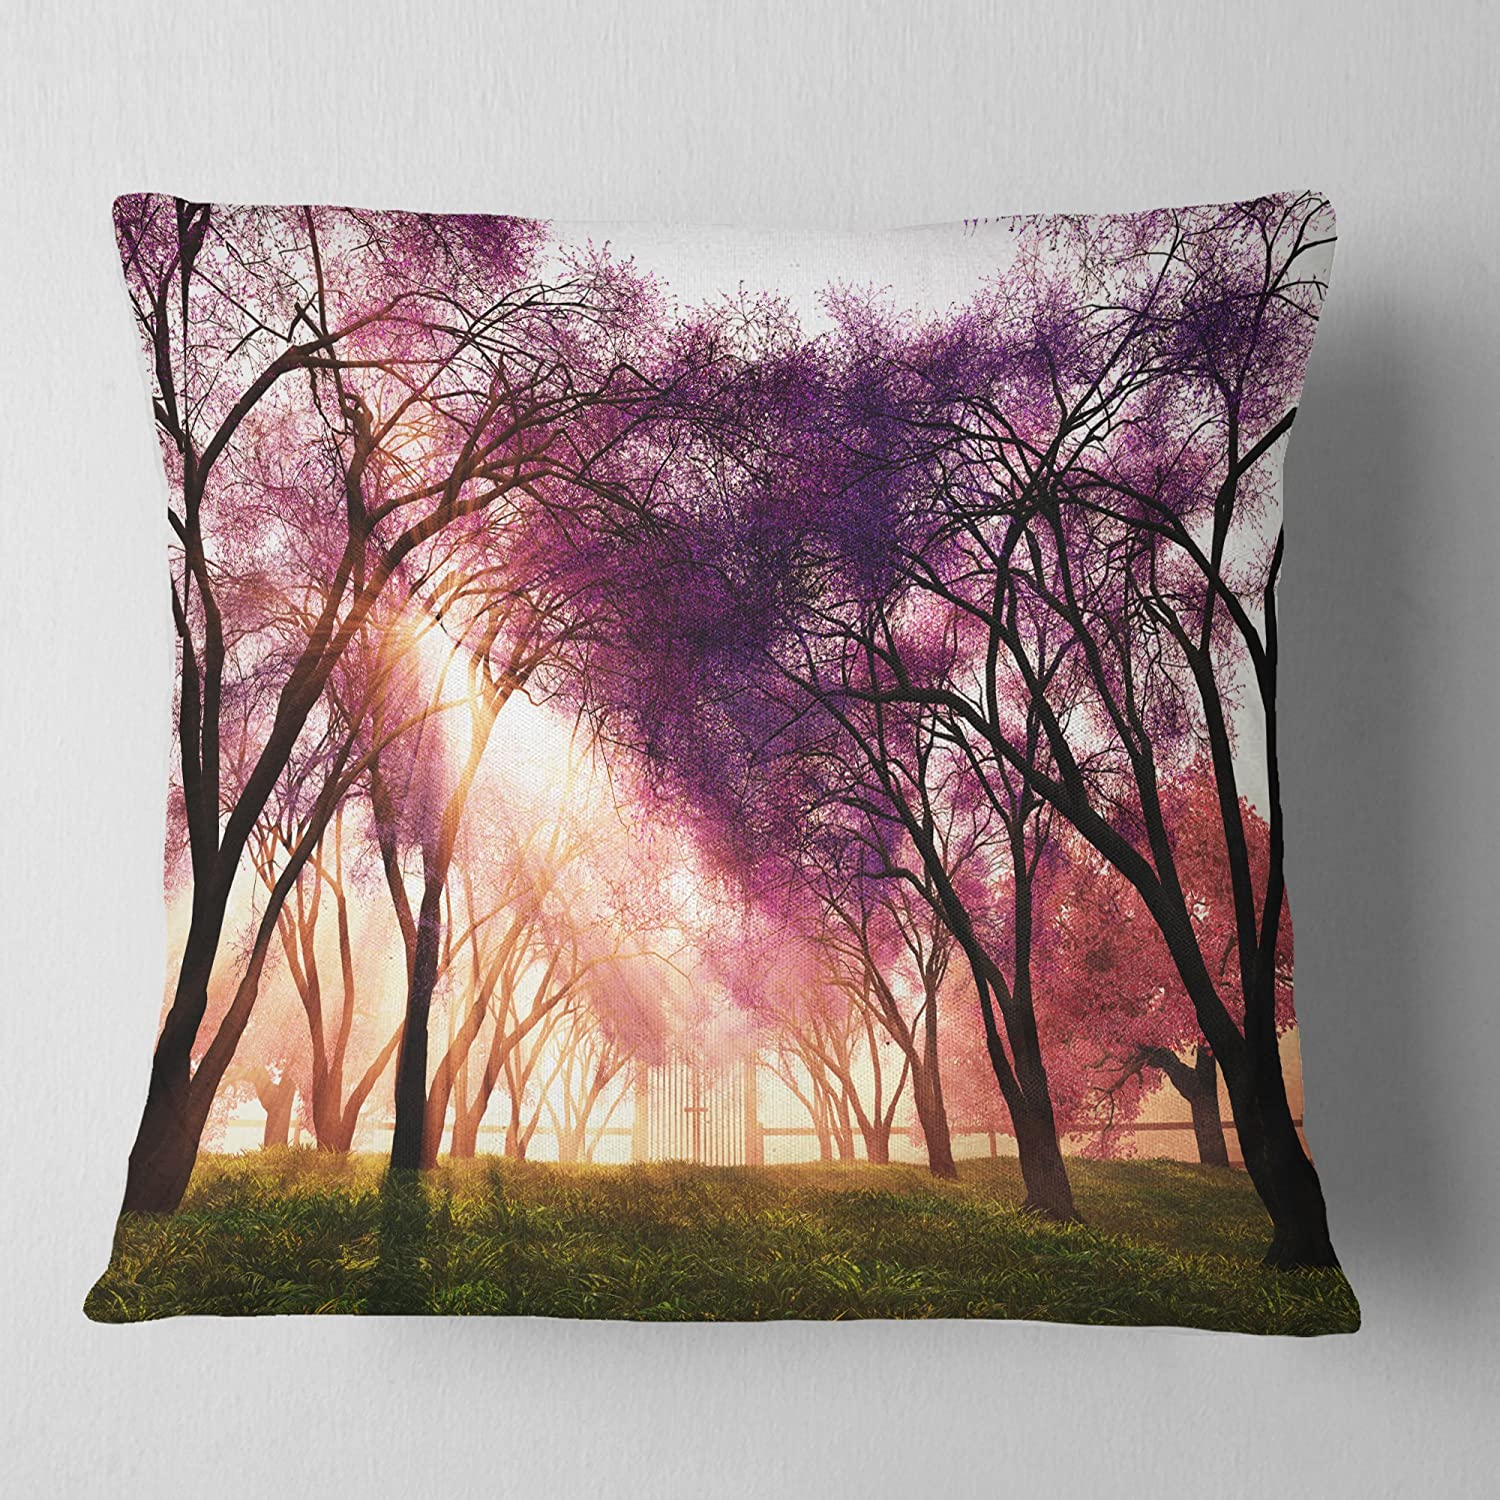 in Sofa Throw Pillow 26 in Insert Side x 26 in Designart CU14294-26-26 Cherry Blossoms Japan Garden Landscape Printed Cushion Cover for Living Room